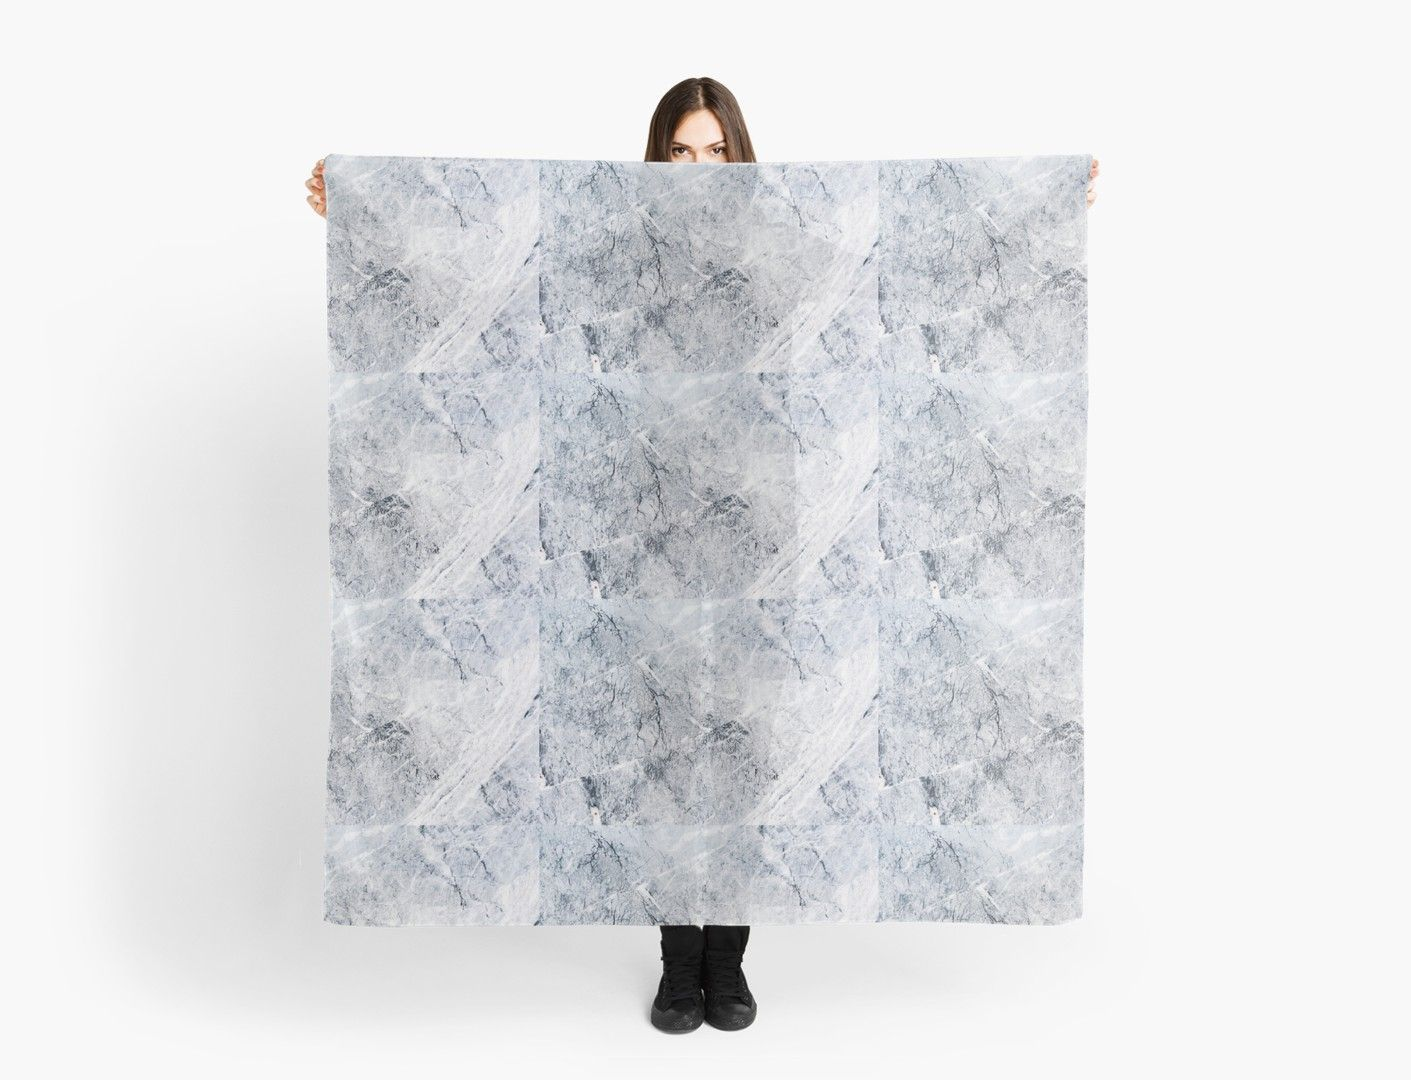 Classic Elegant White Marble Texture Rock Marble Snow Natural Granite Pattern Crystal Texture Mo Textured Scarves Marble Texture Wall Art Canvas Prints